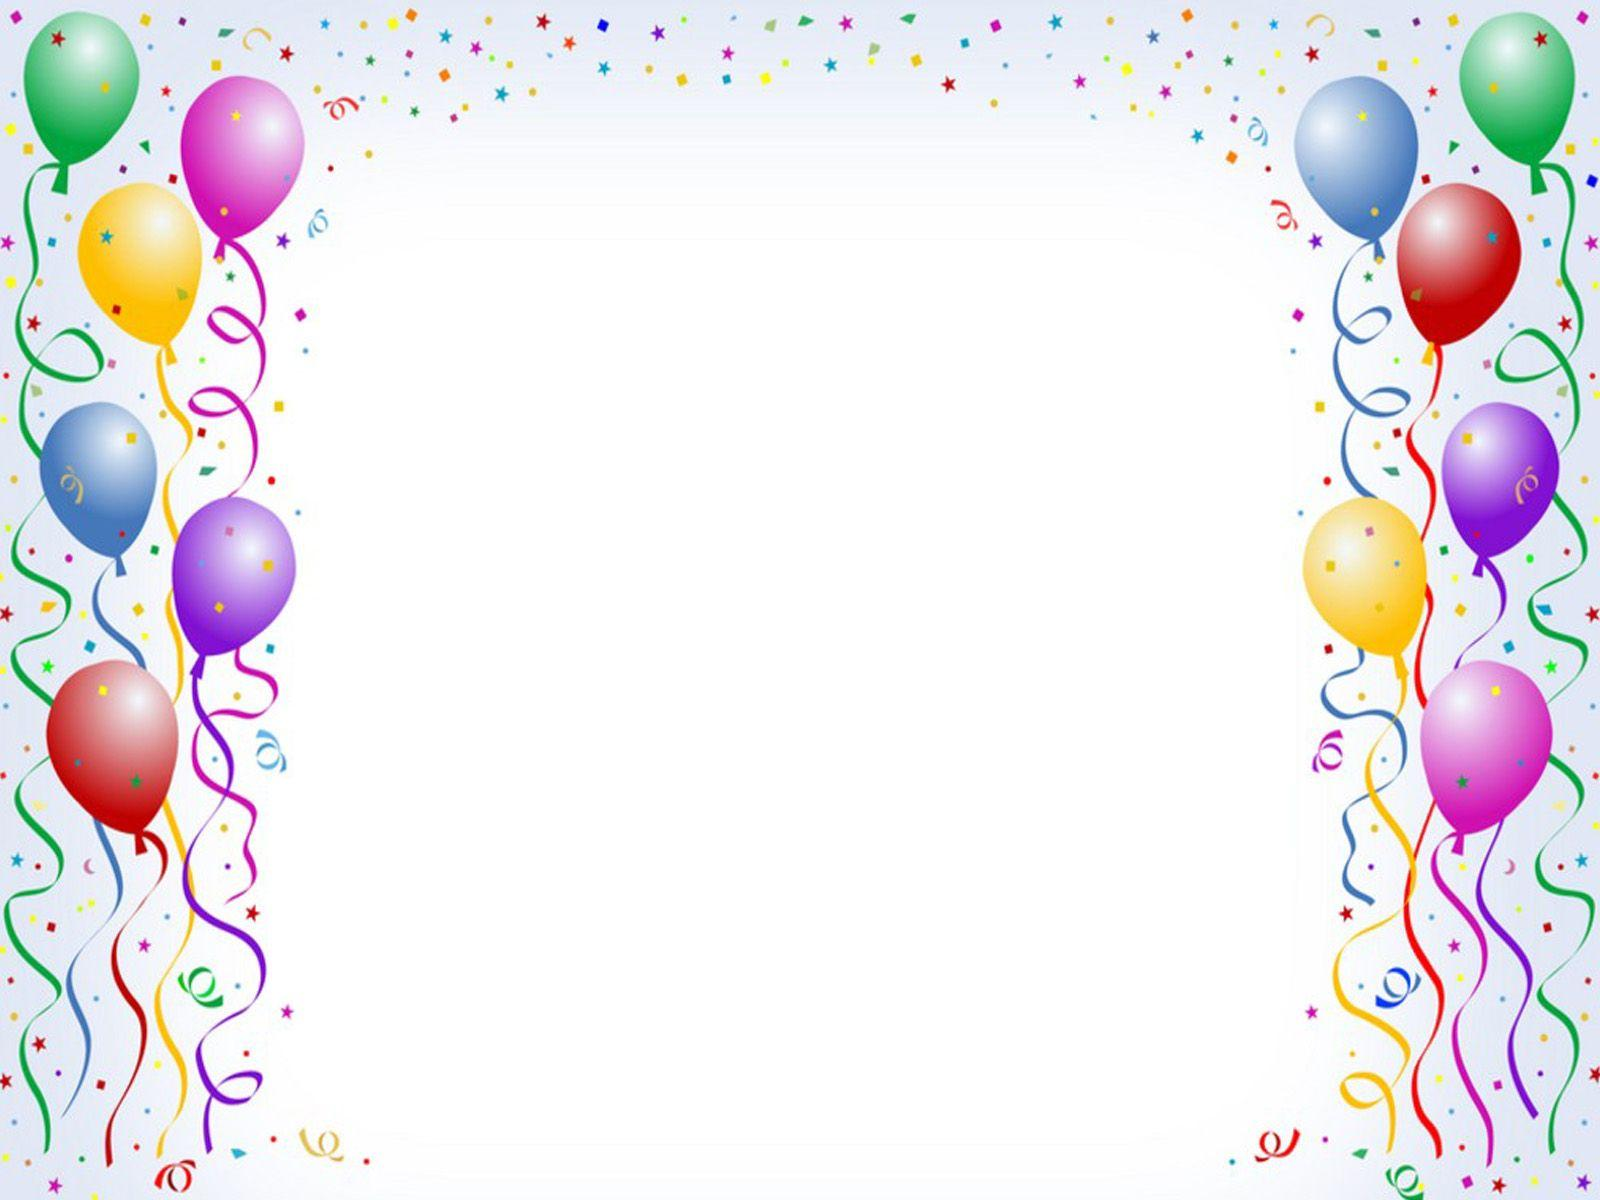 Birthday Backgrounds 18425 1600x1200 px ~ HDWallSource